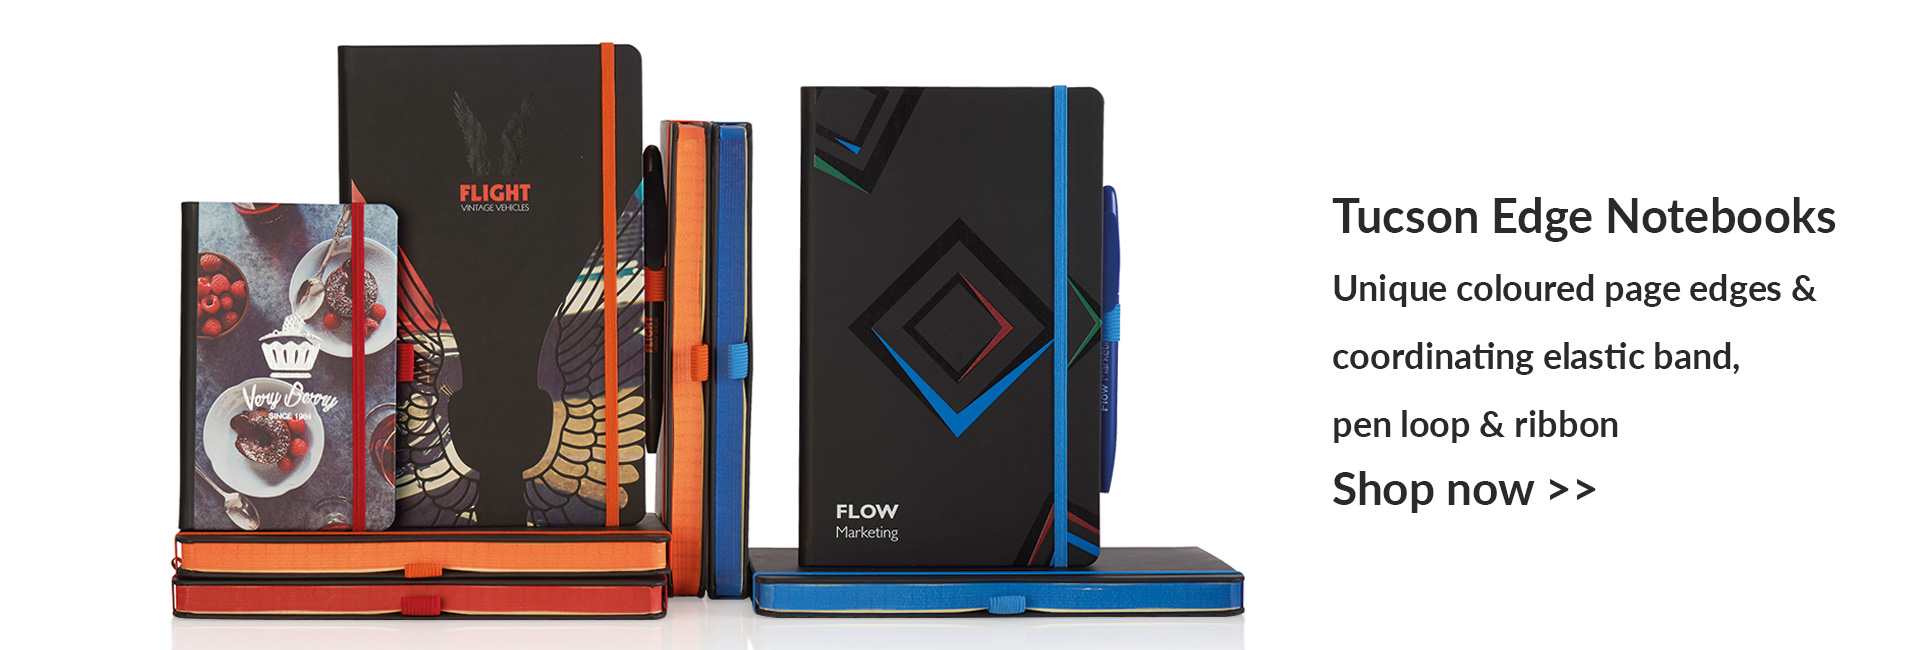 Notebooks with company branding options available